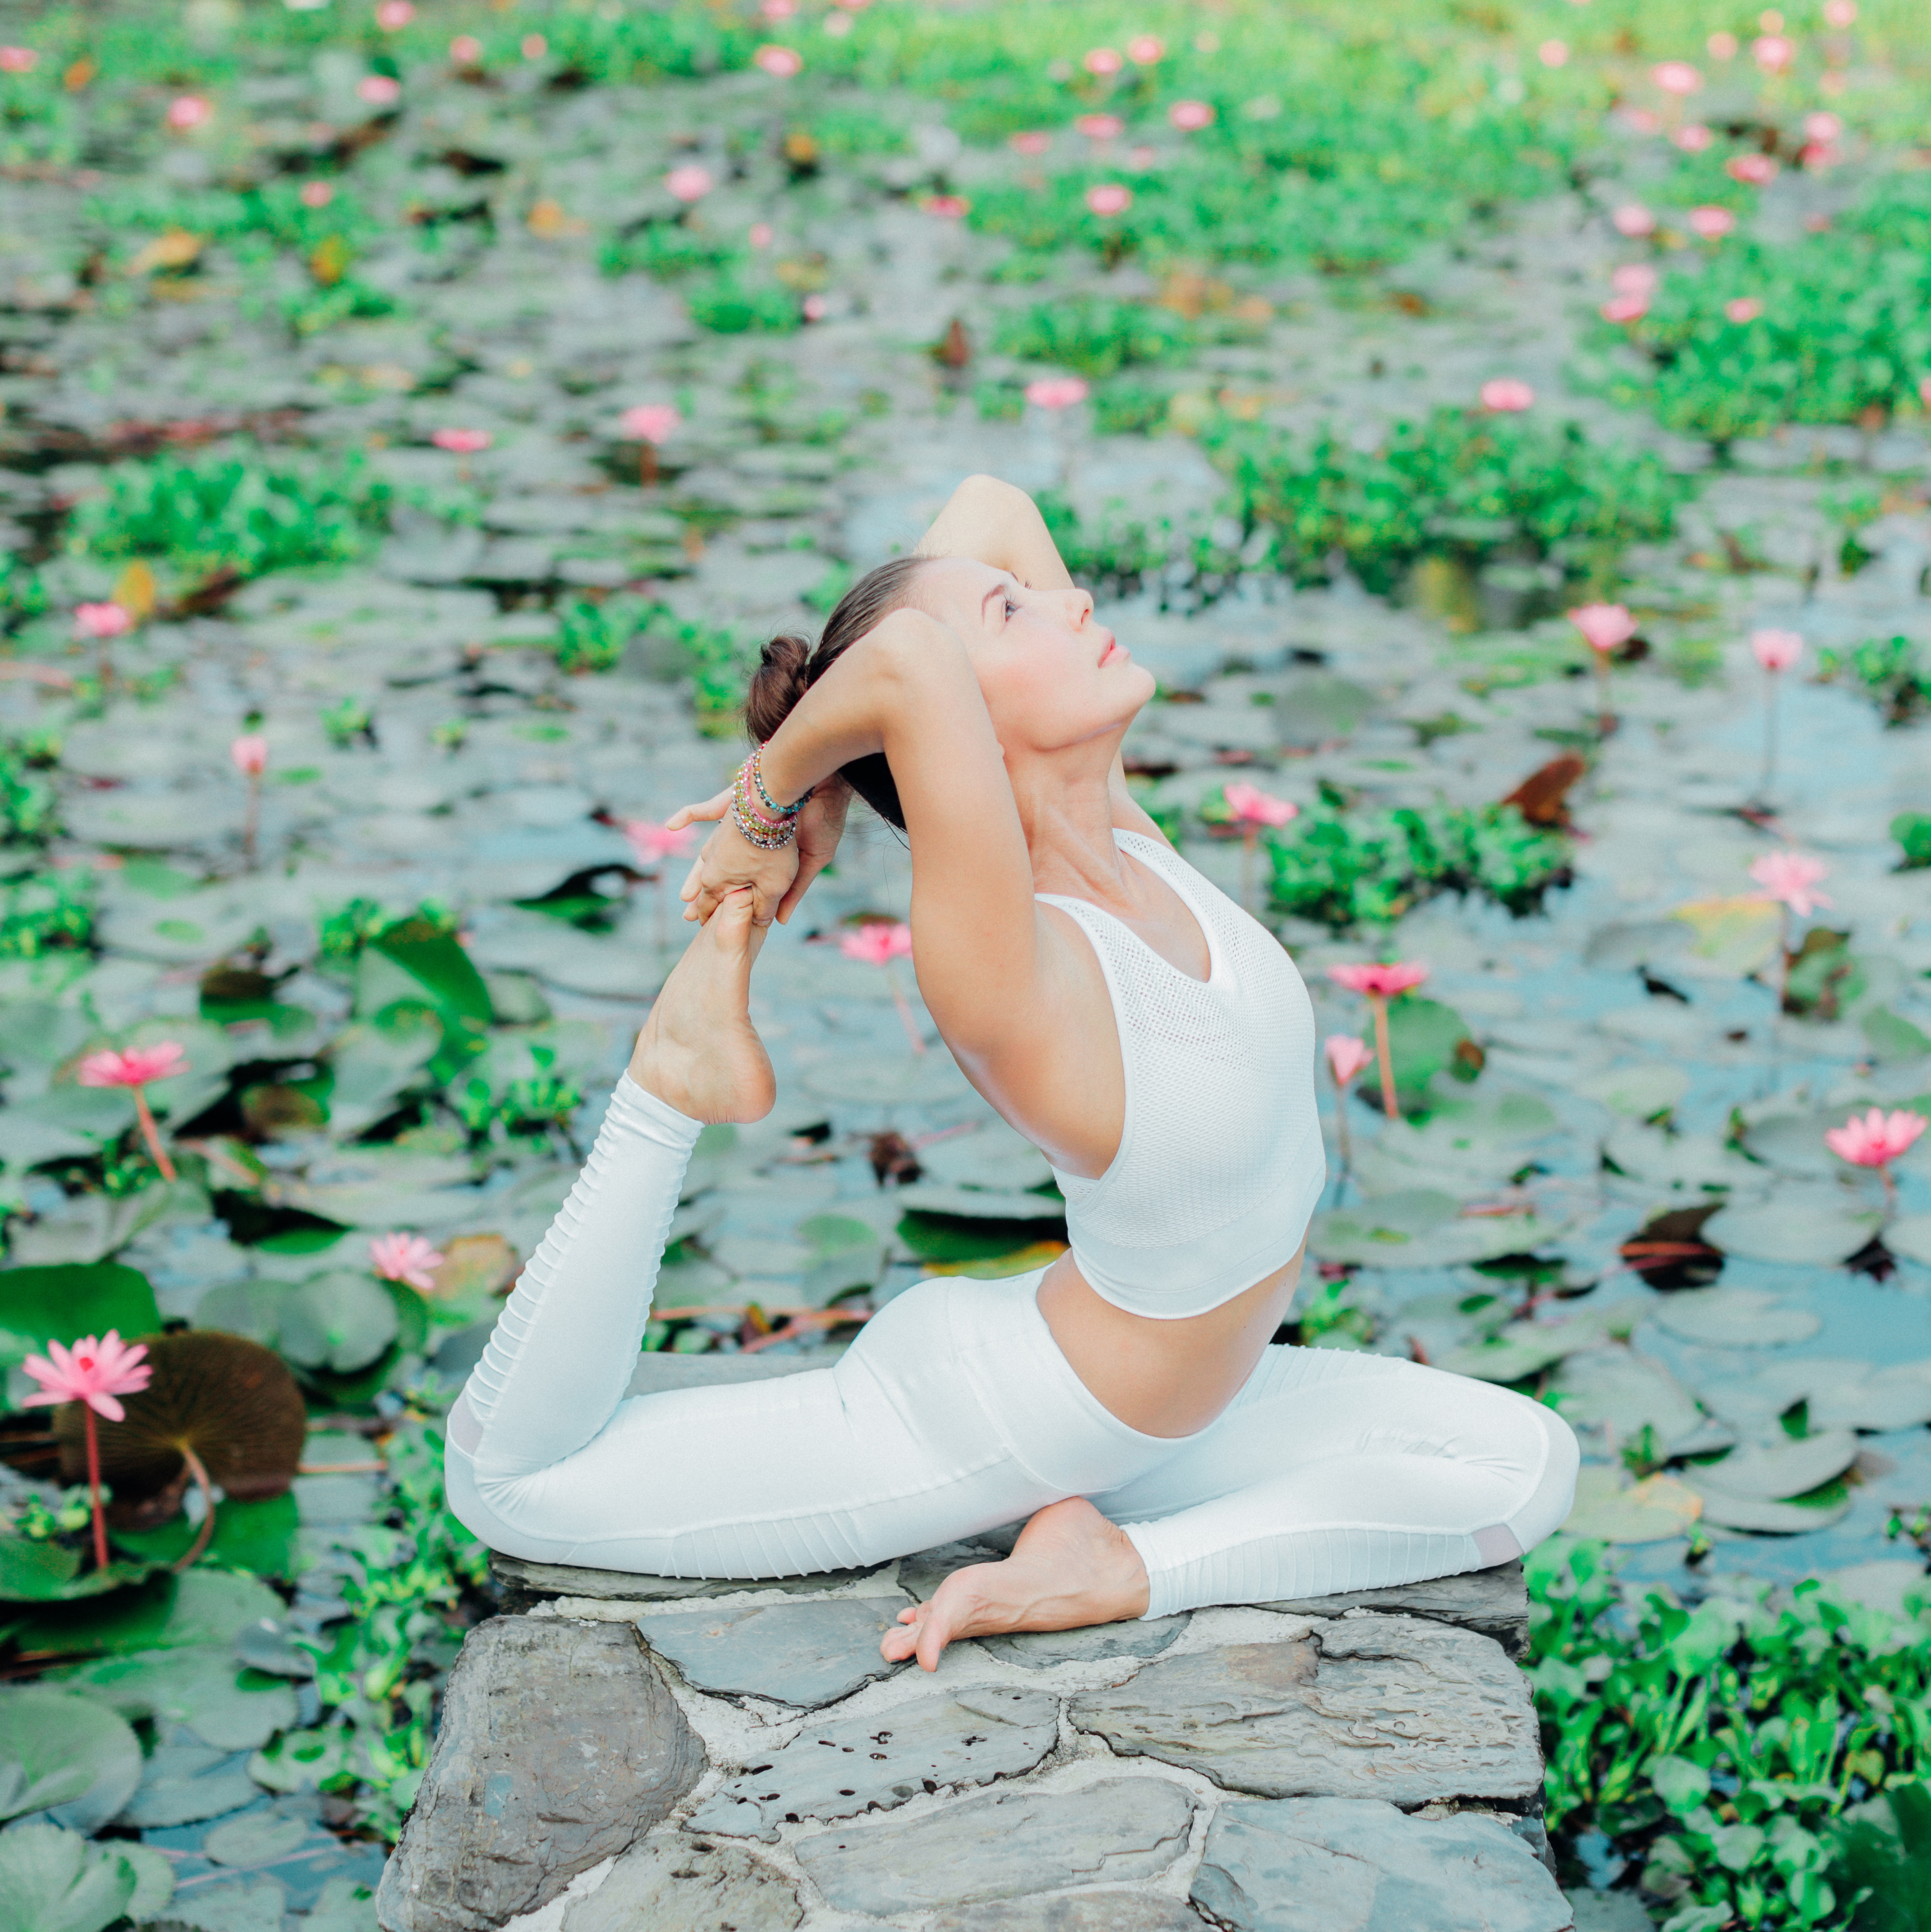 Yoga On & Off the Mat: Denise Keller, TV Entertainment Presenter, Yogi, Singapore